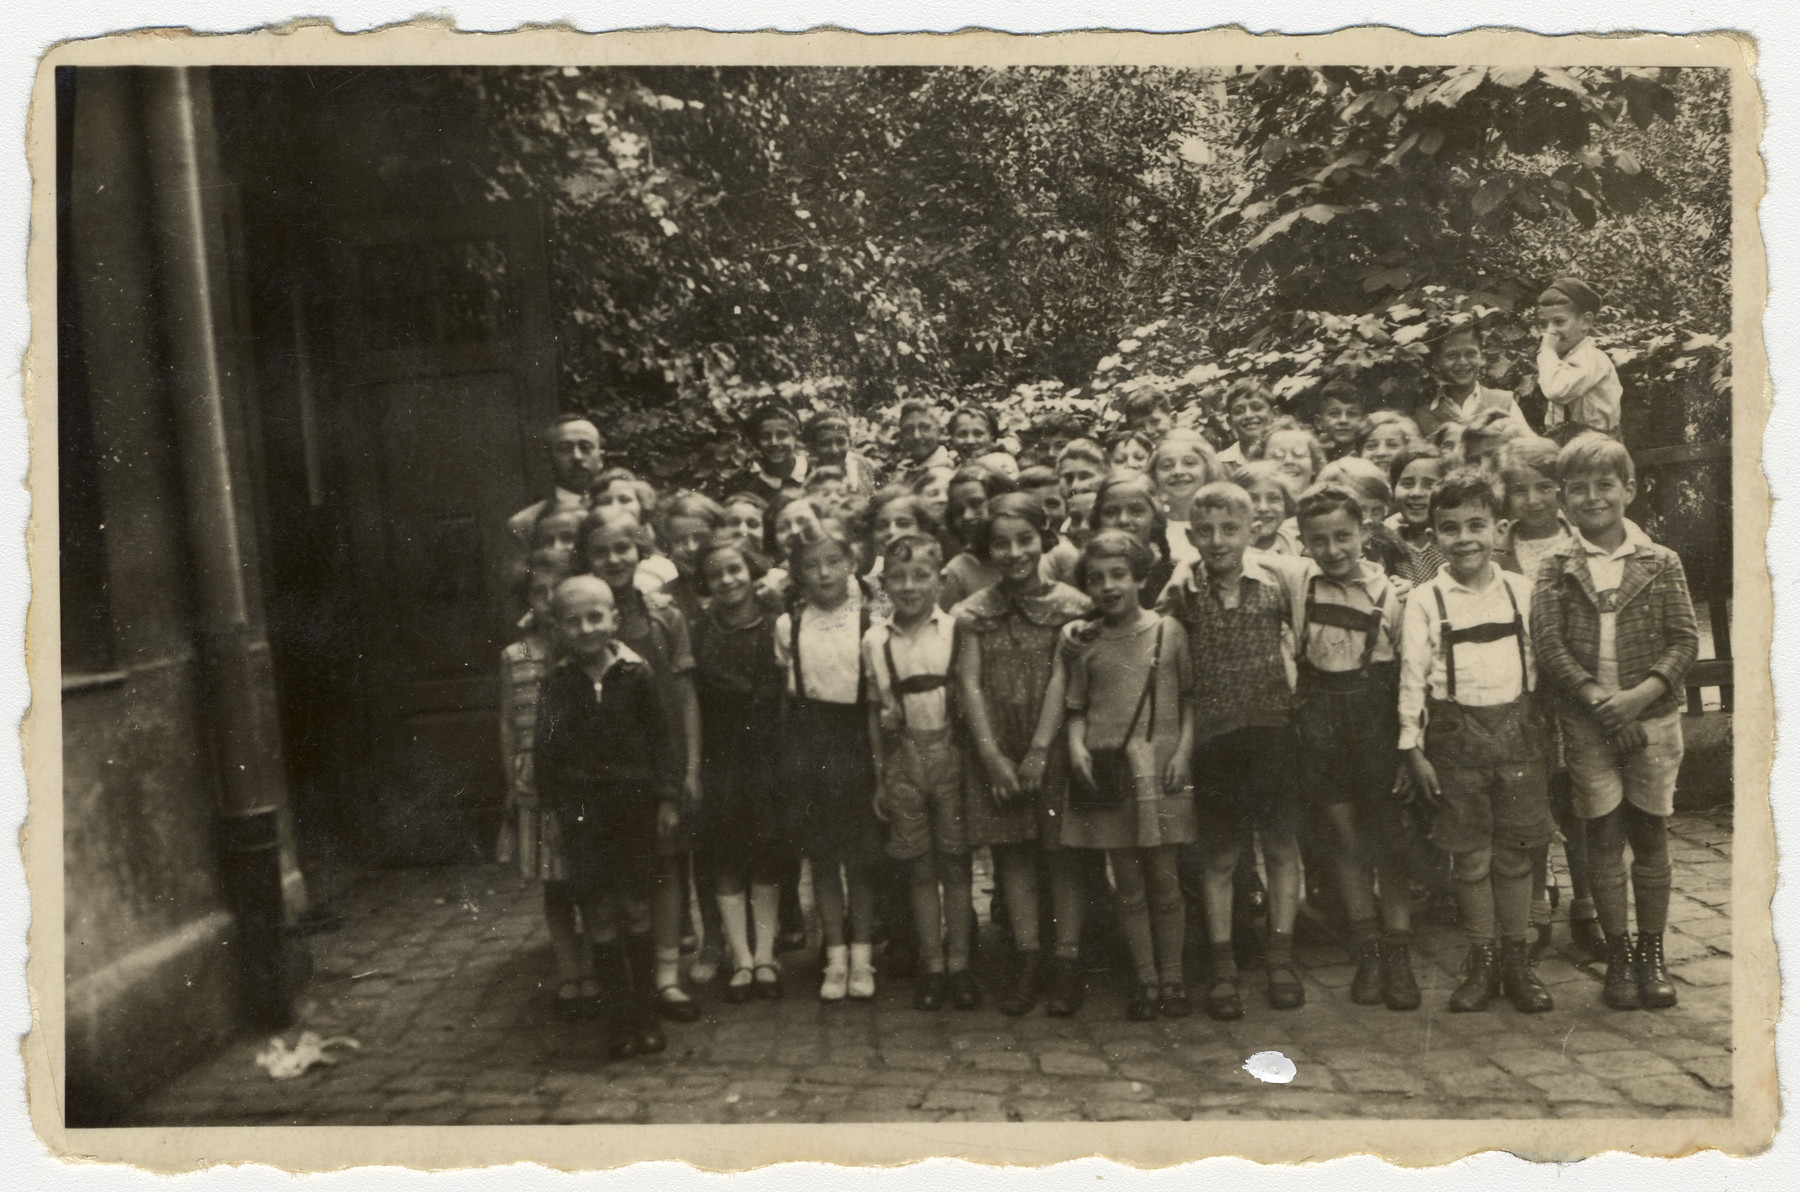 Group portrait of a second grade class in a religious elementary school in Nuremberg, Germany.  Among those pictured is Meir Schwarz, front row, fourth from the left.  Standing behind him is the teacher Mr. Blum.